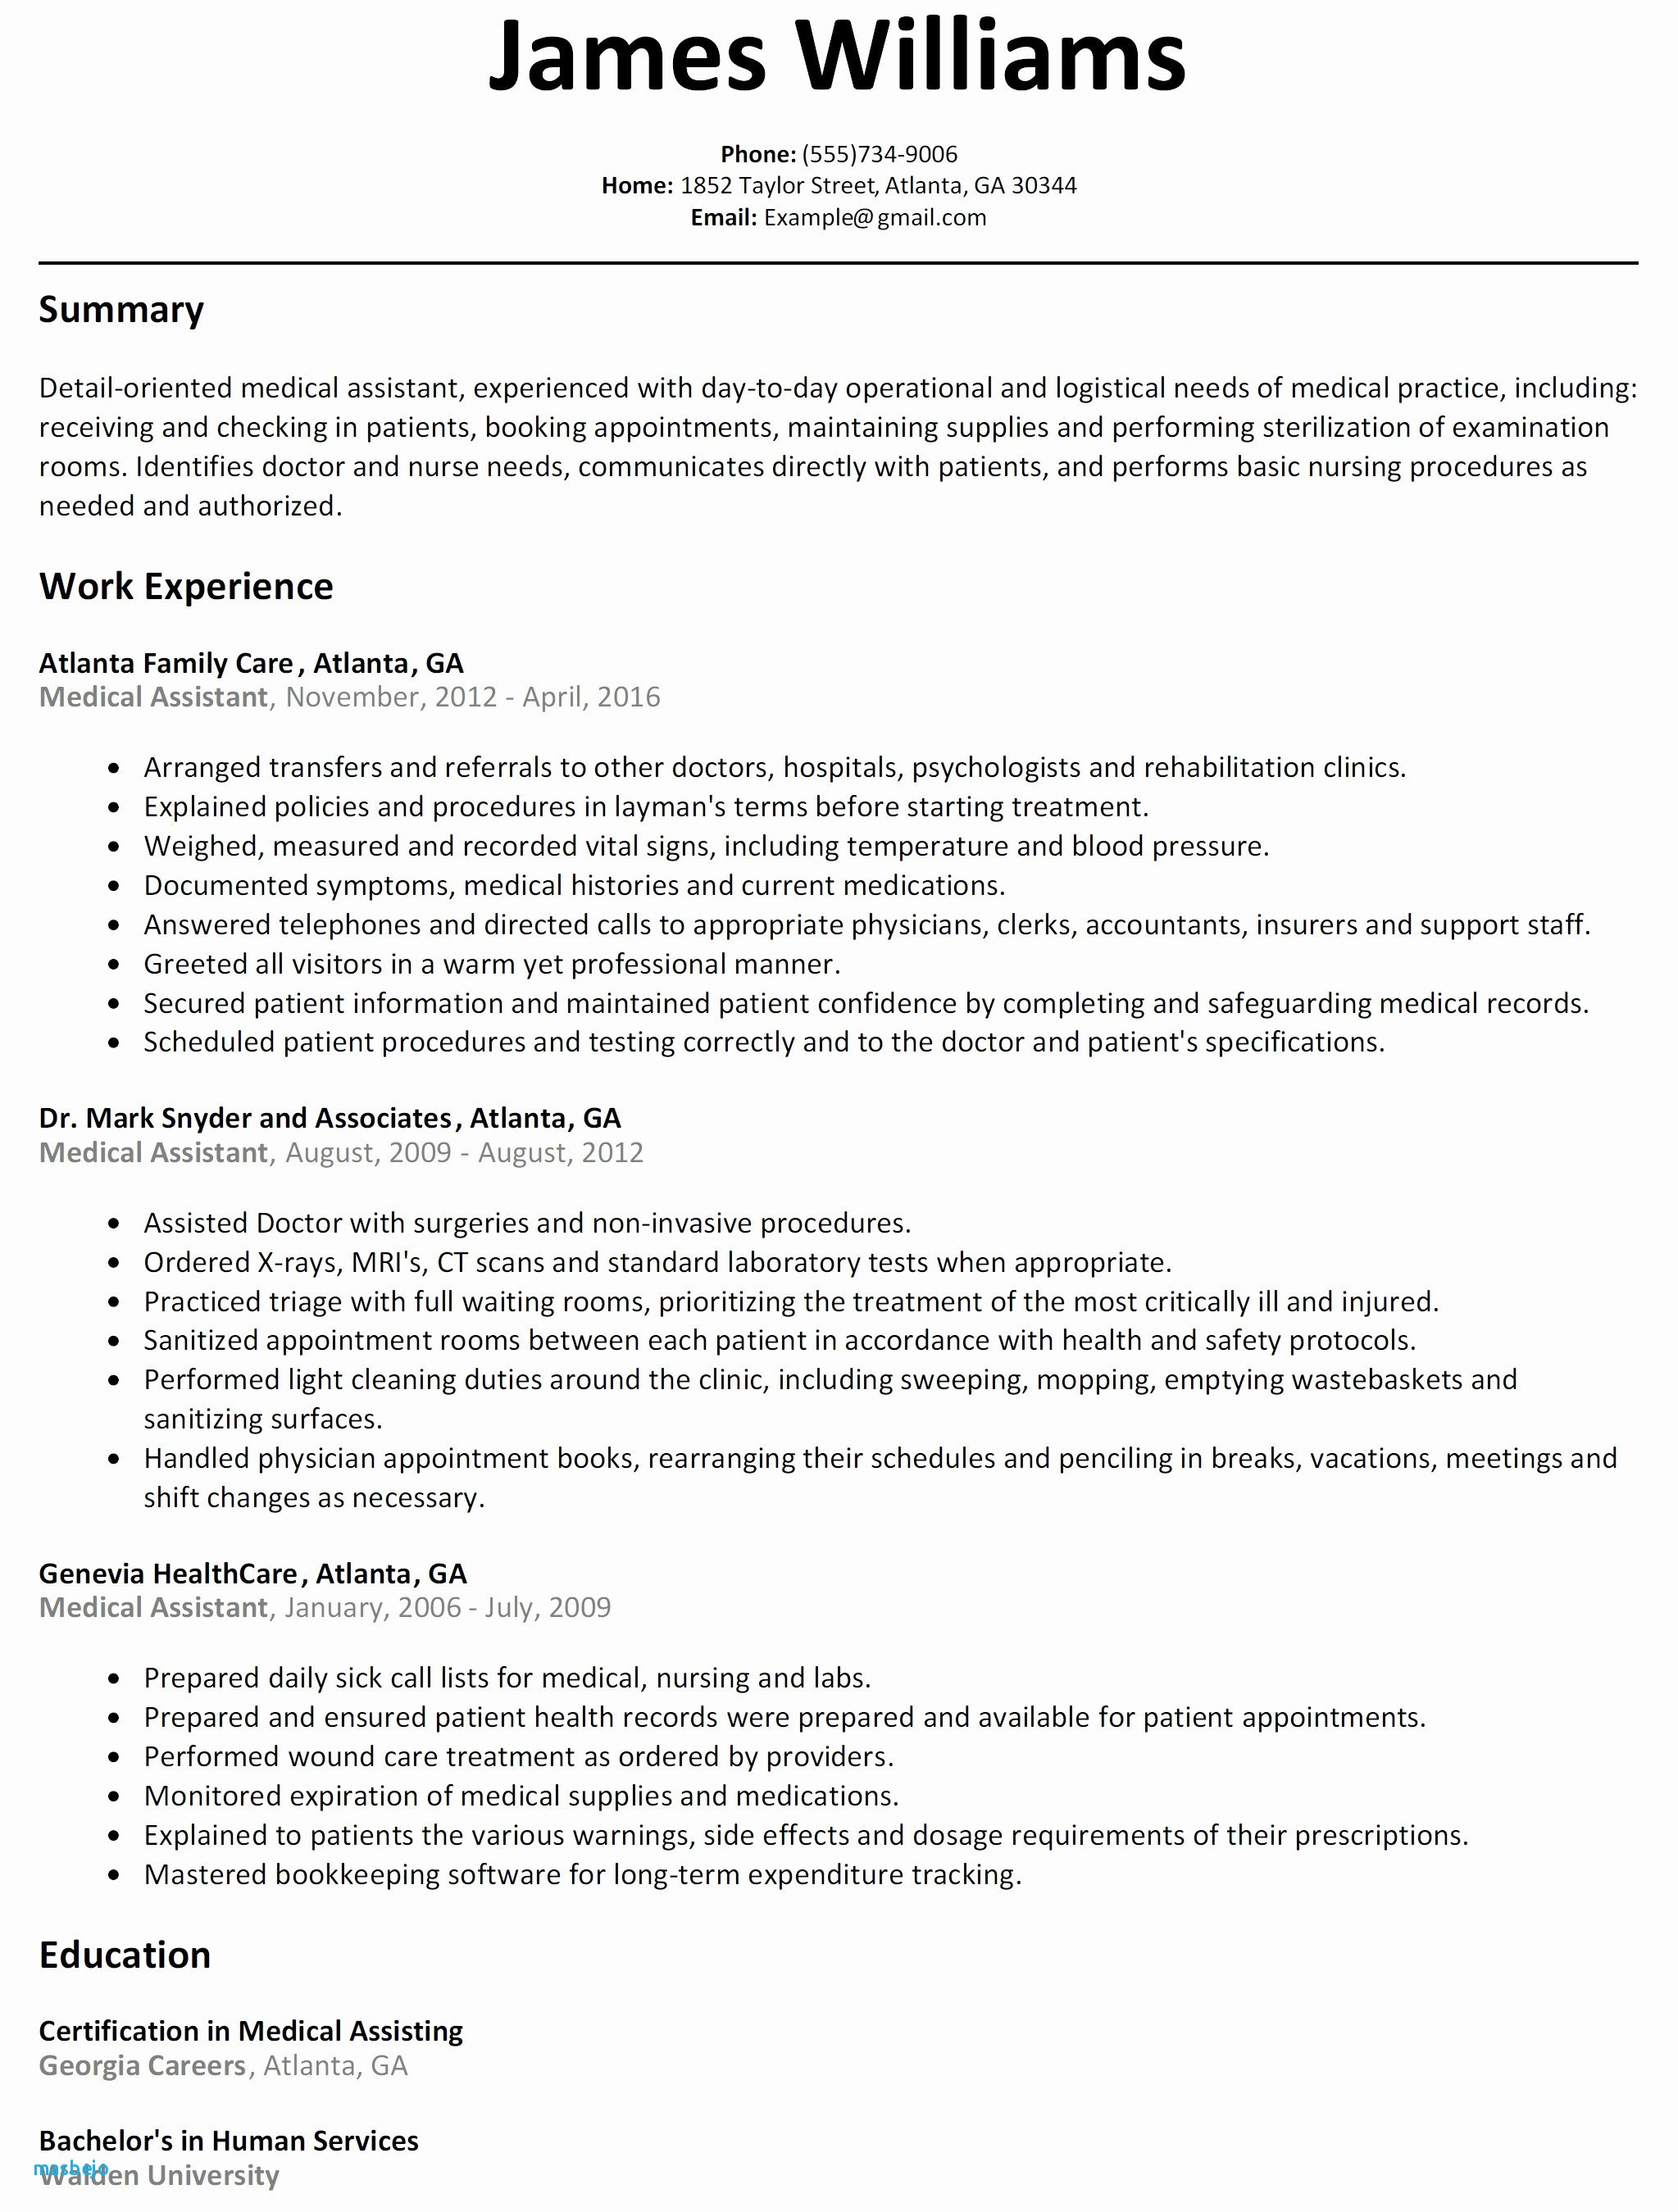 Medical assistant Summary Resume - Free Certified Medical assistant Resume Samples Resume Resume